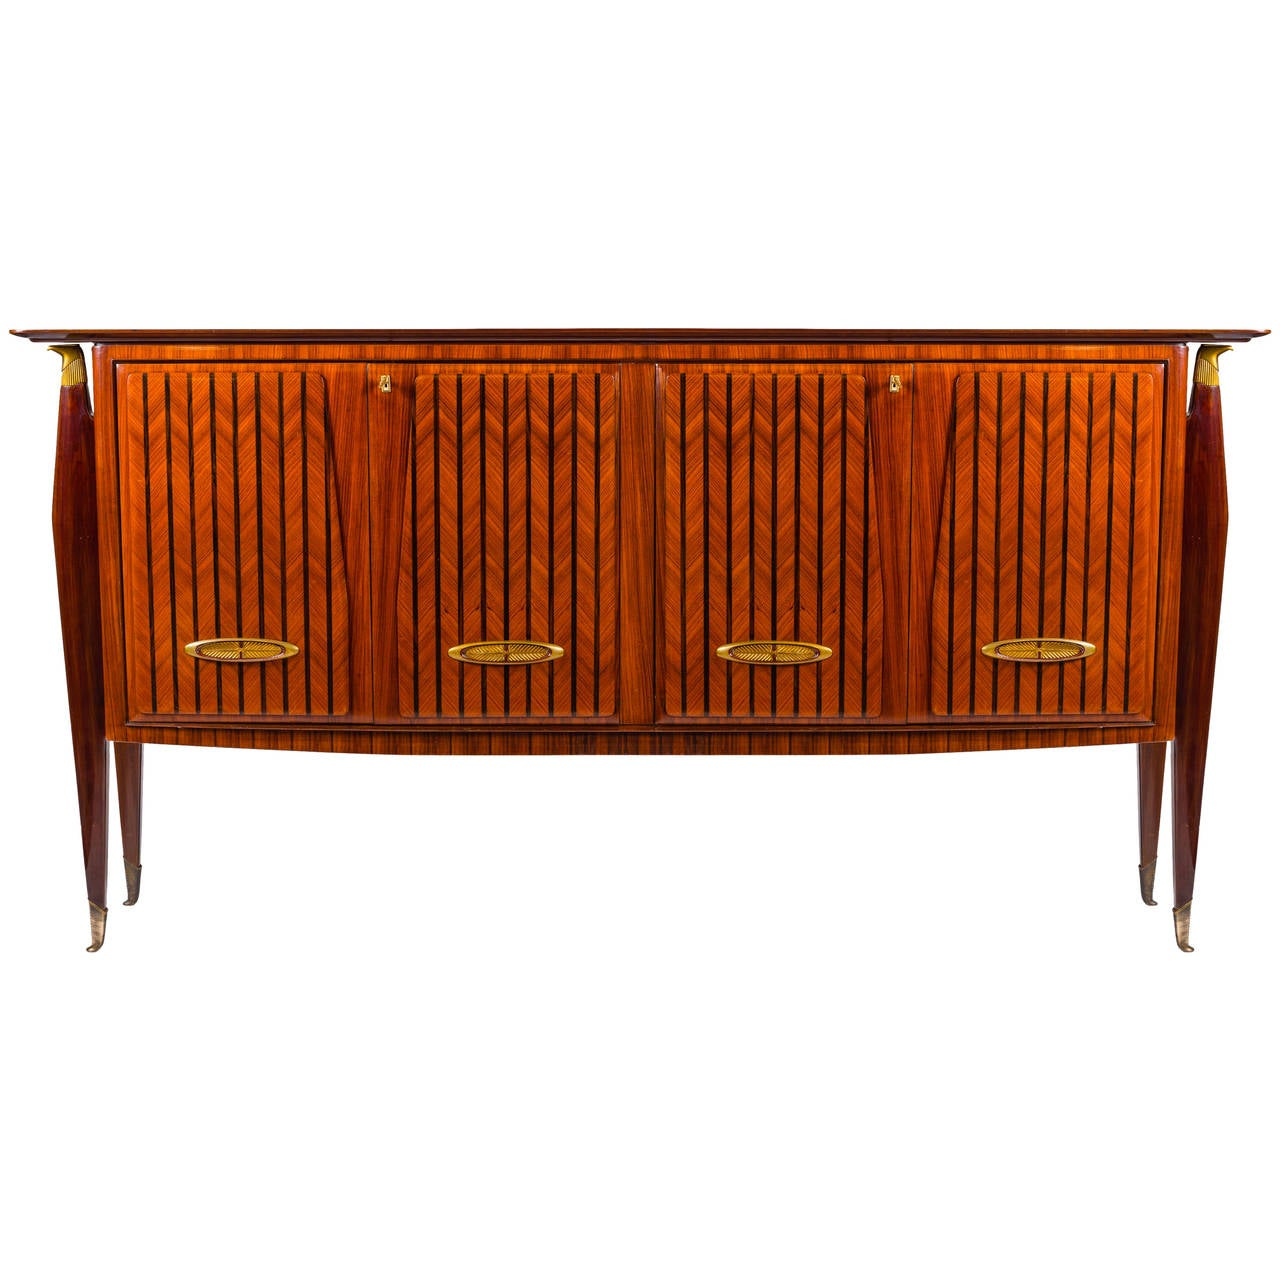 Italian Design Mid-century Sideboard or Bar in the Style of Paolo Buffa, 1950s